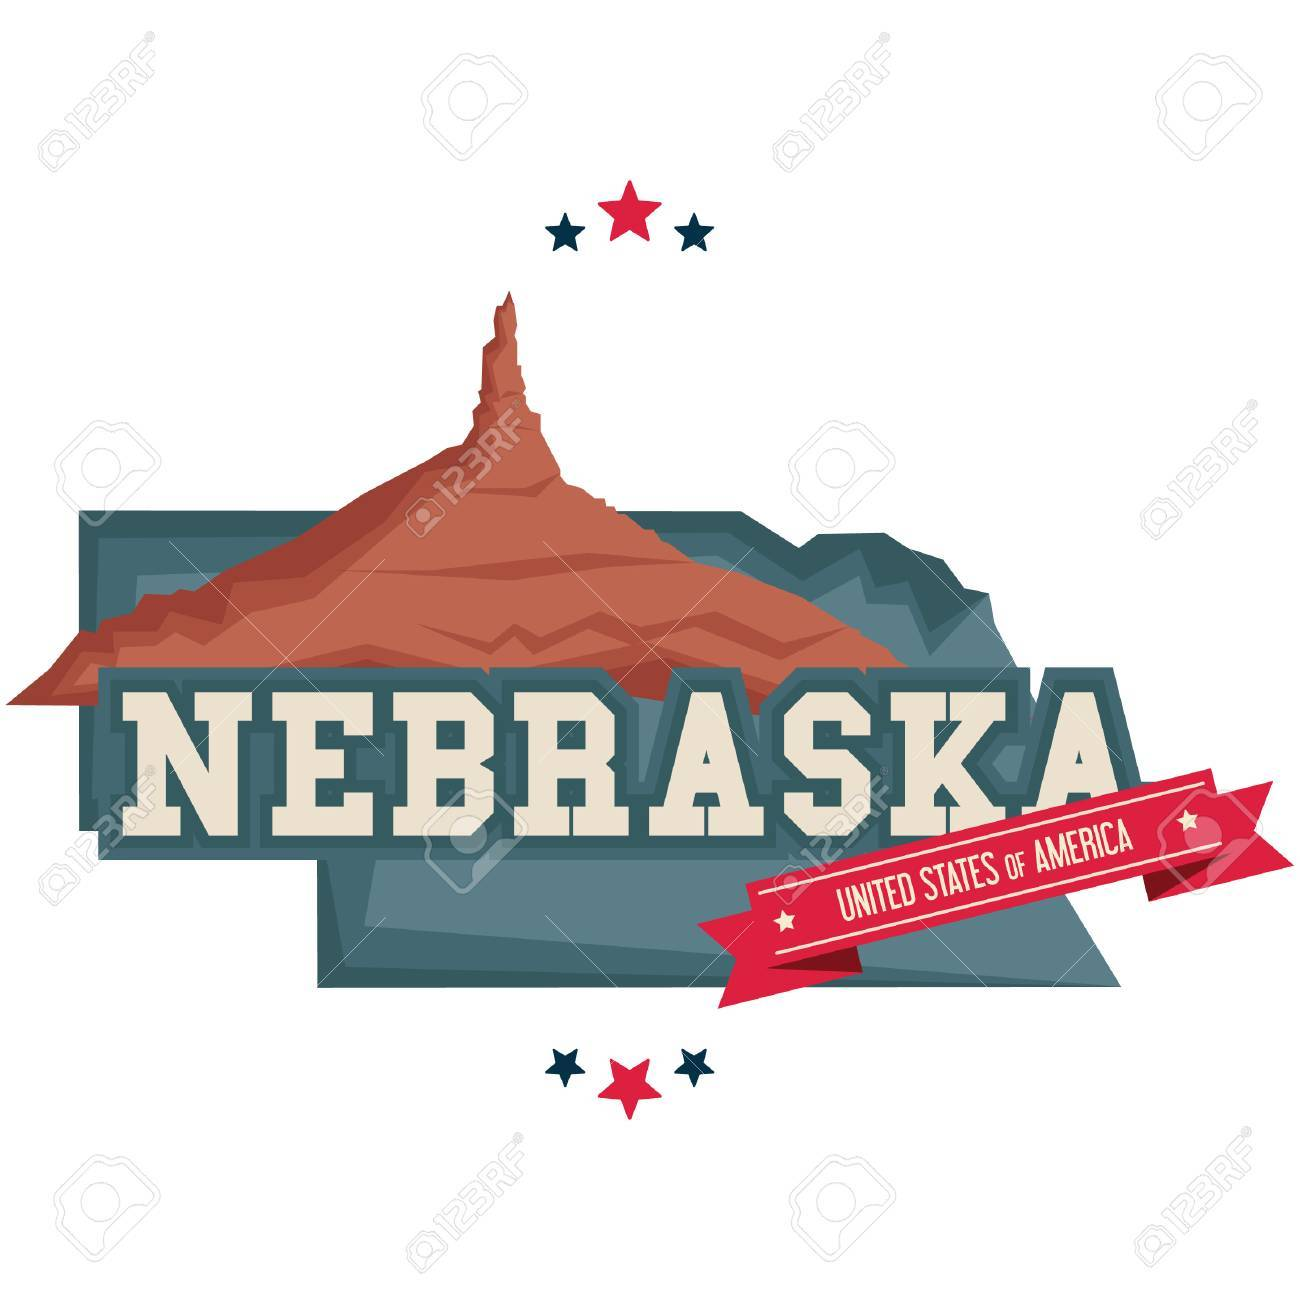 Nebraska Map With Chimney Rock Royalty Free Cliparts Vectors And